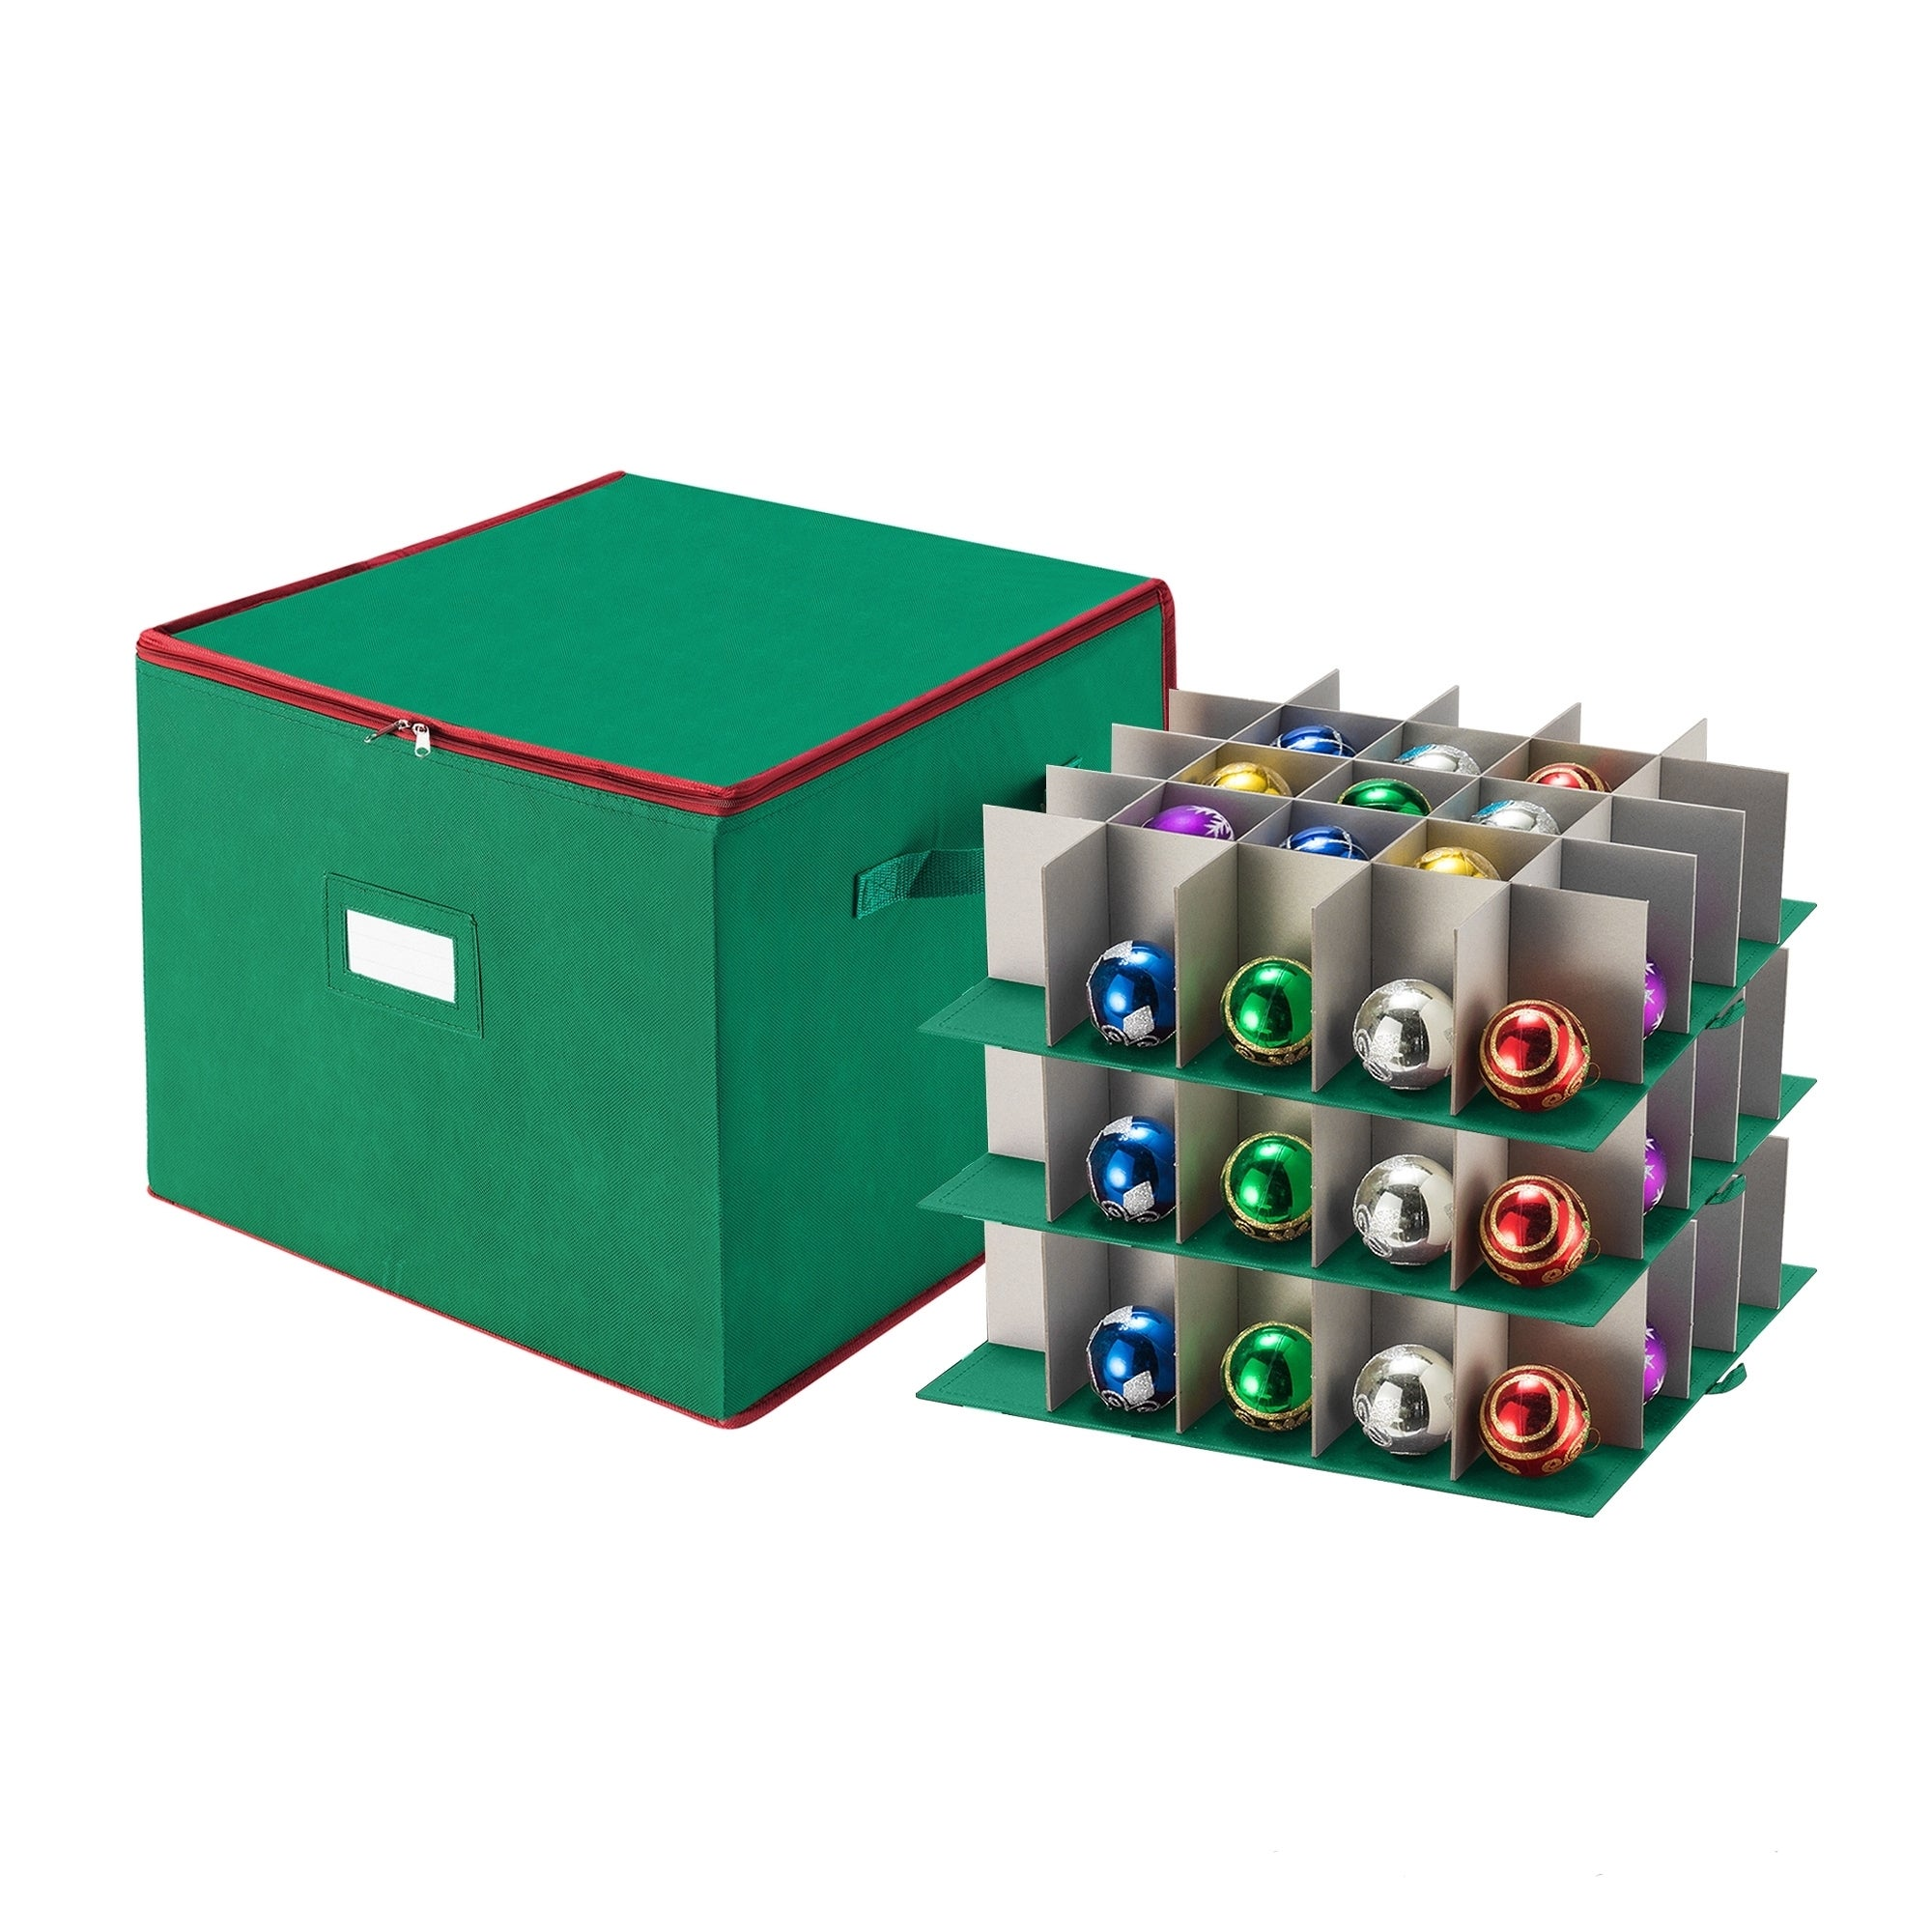 Christmas Ornament Storage.Tiny Tim Totes Red Green Fabric Christmas Ornament Storage Chest With Dividers